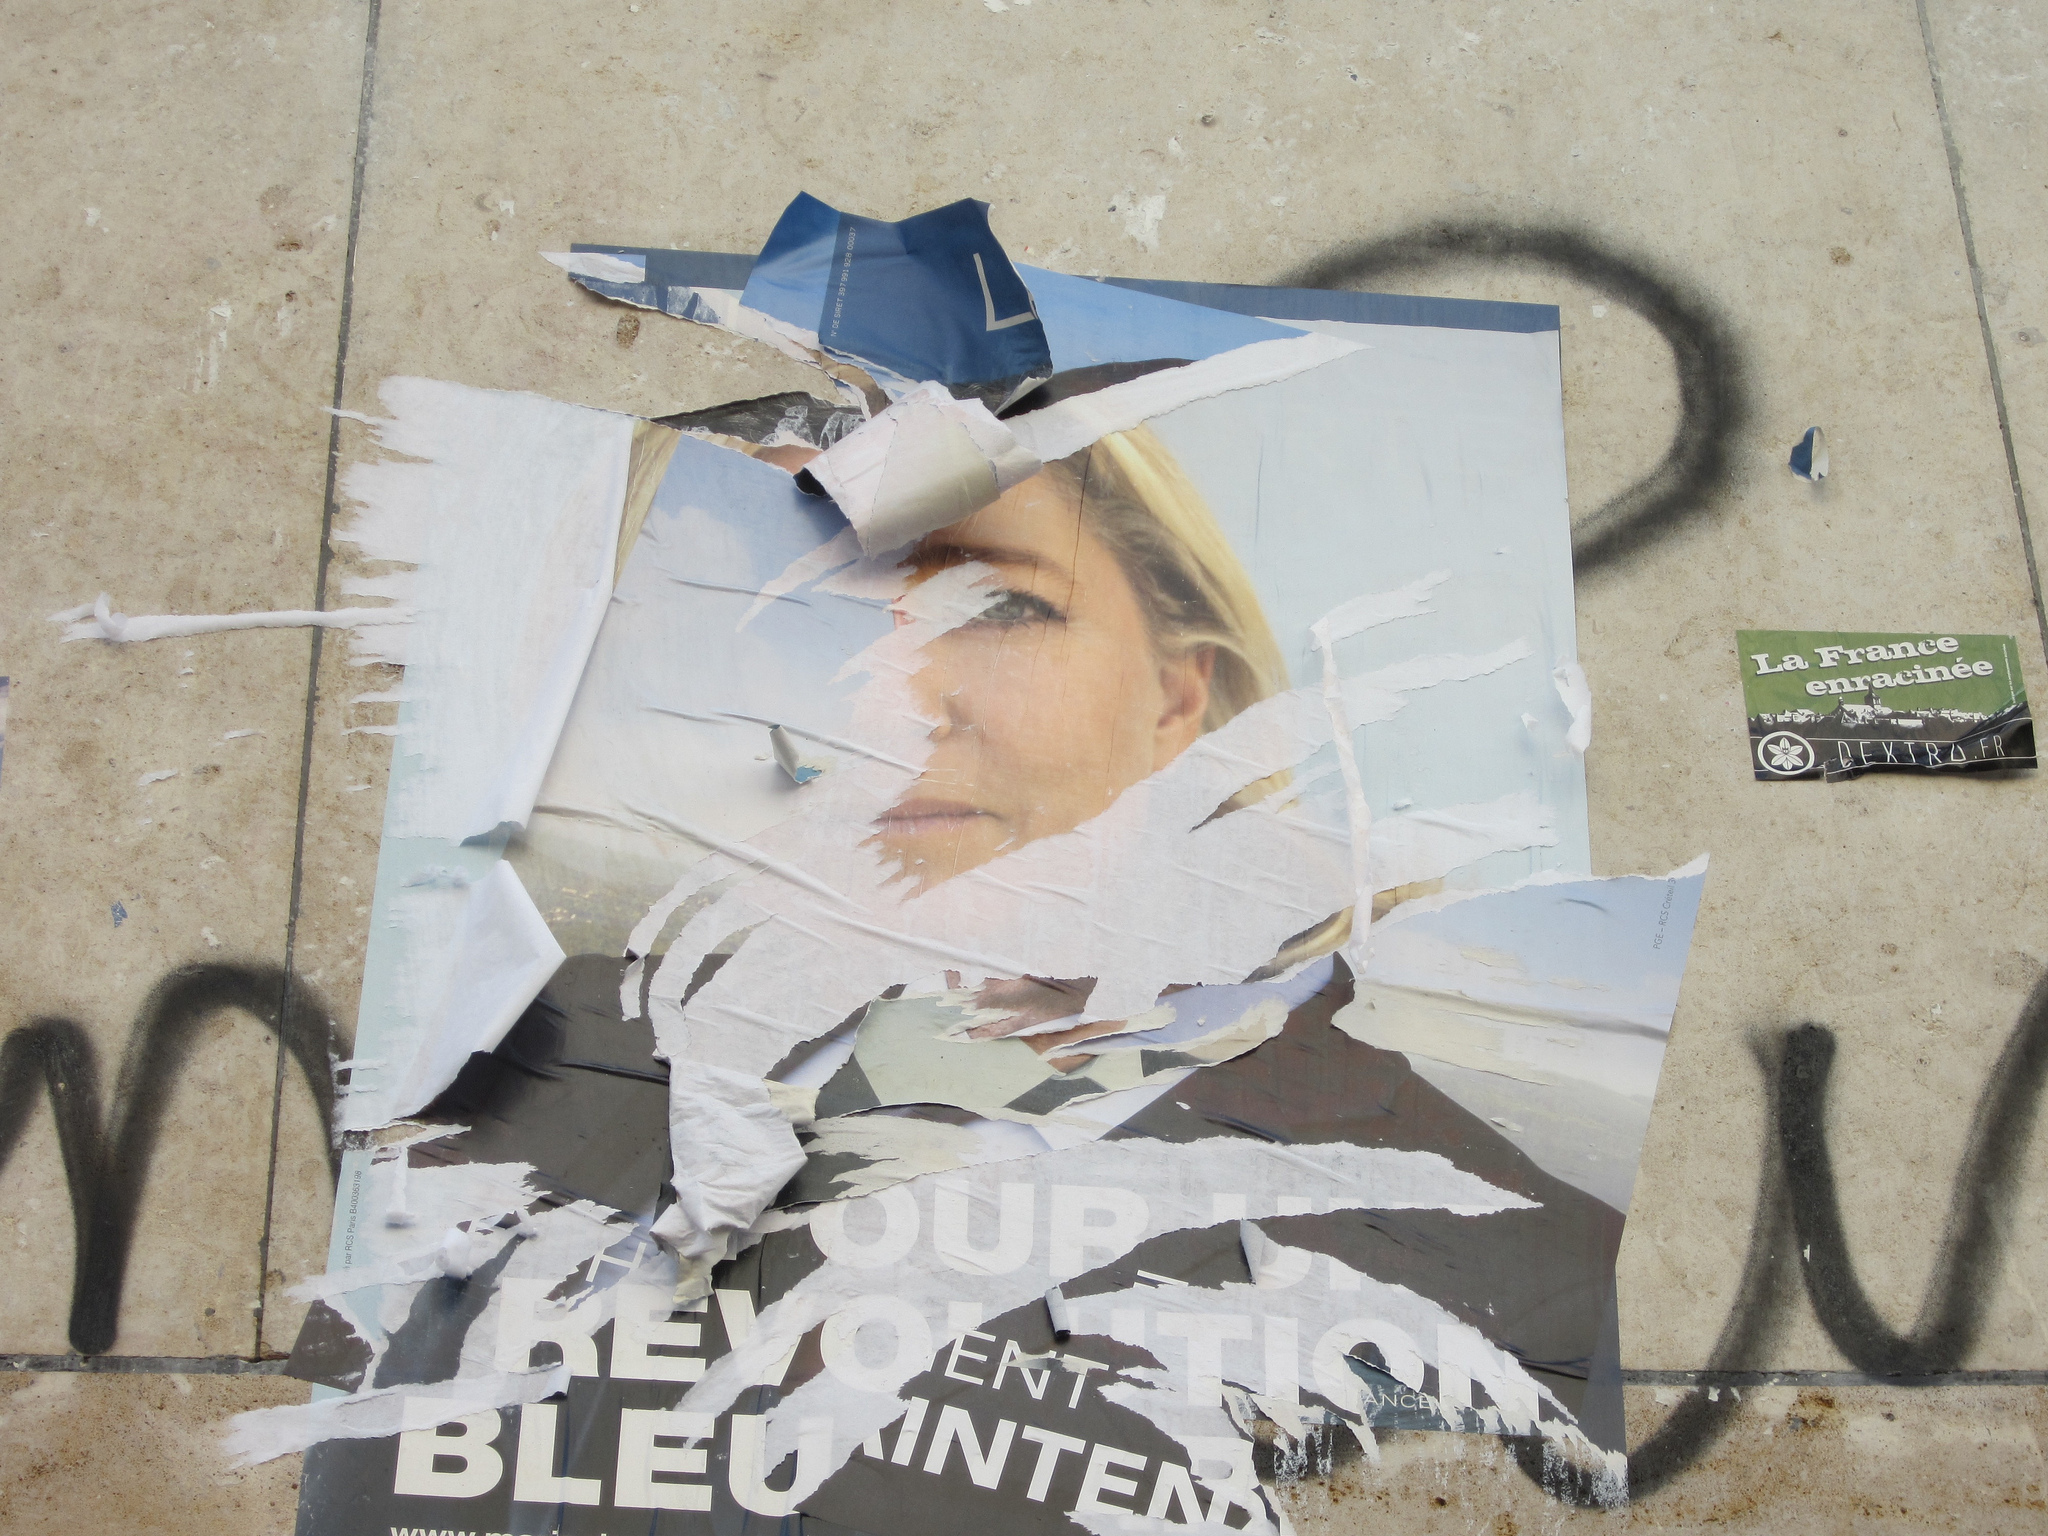 A torn up poster depicting Marine Le Pen, found in 2012. Photo Credit: Sylke Ibach Flickr Link: https://flic.kr/p/dBmjEG